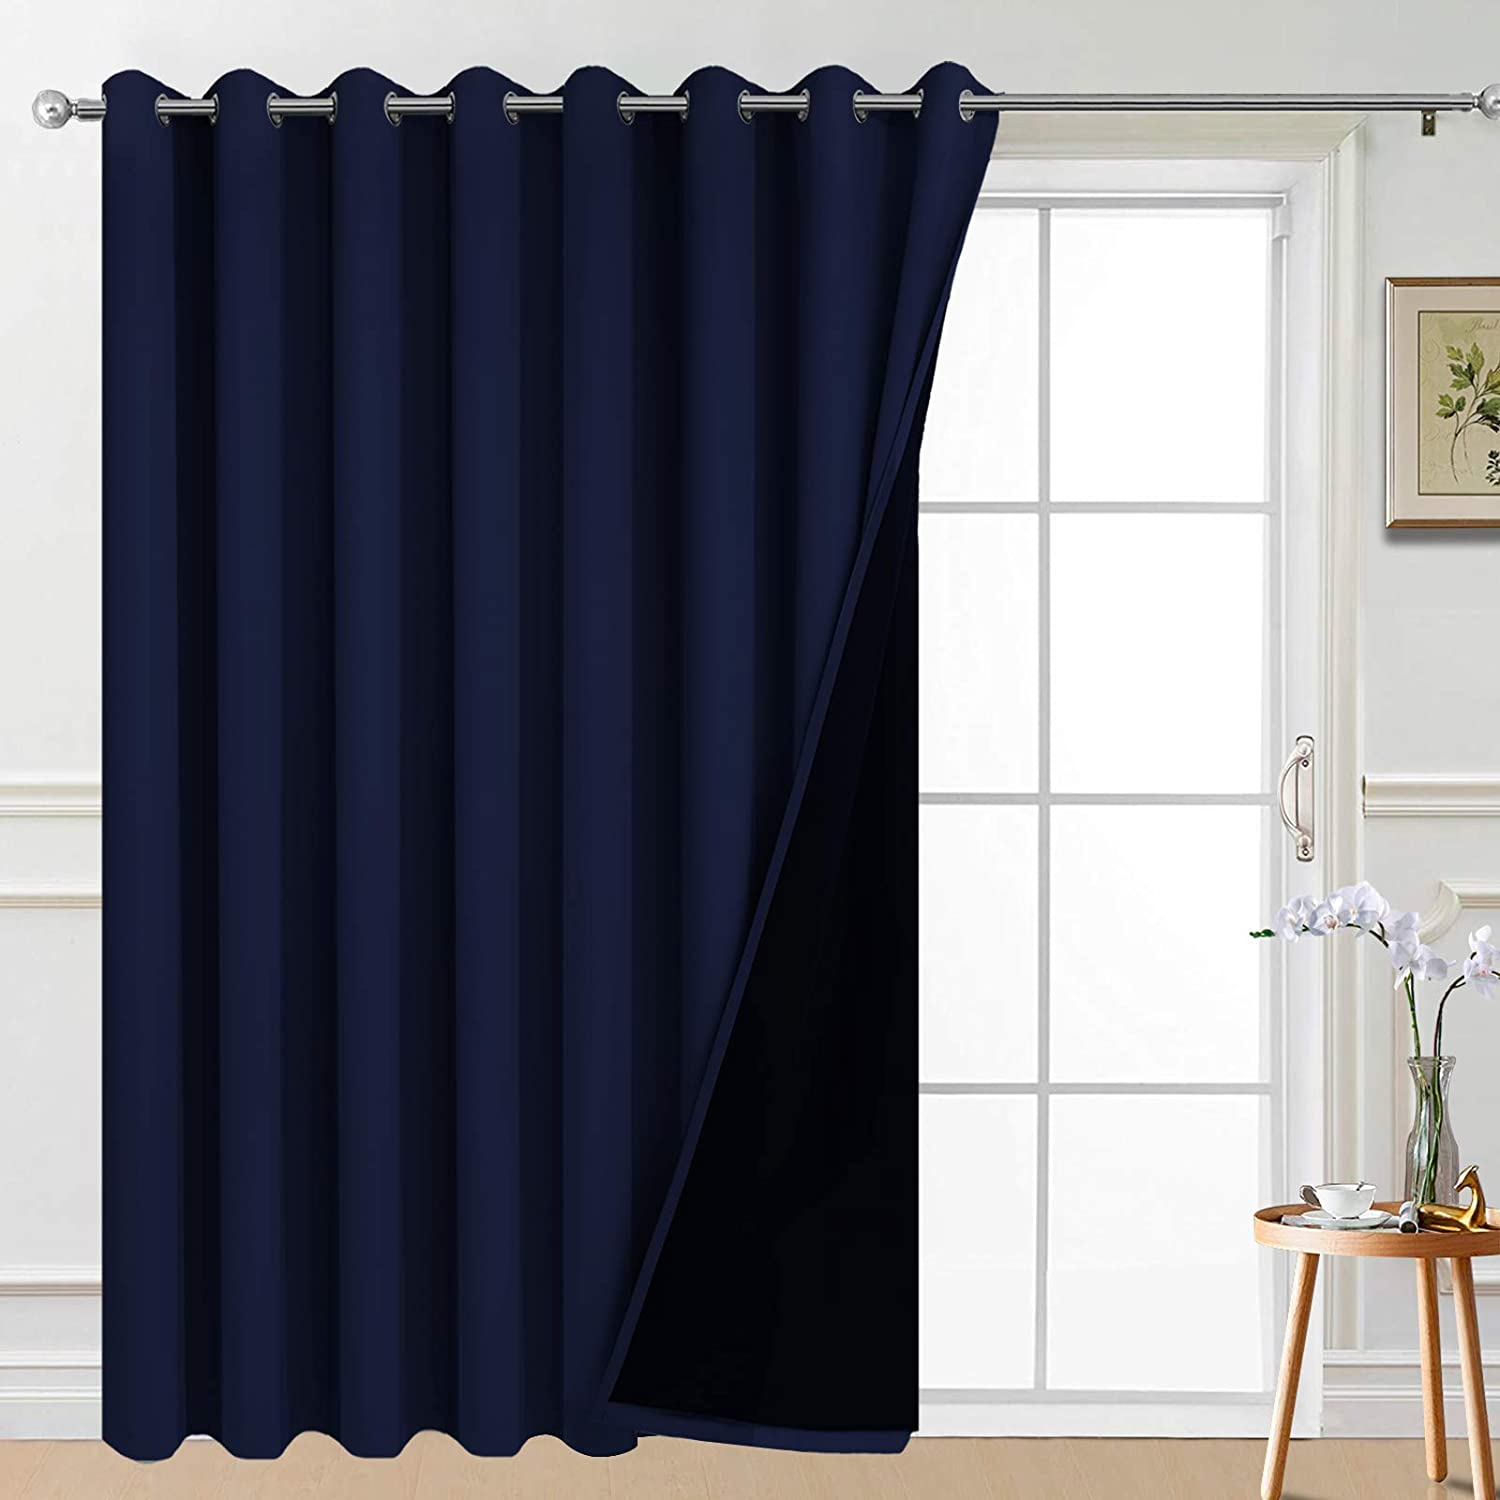 Yakamok 100% Wide Blackout Curtain 100 x 84 Inches for Sliding Glass Door, Grommet Light Blocking Thermal Insulated Room Divider Curtain for Living Room, 1 Panel,8.3ft Wide x 7ft Tall, Navy Blue 100W x 84L Navy Blue